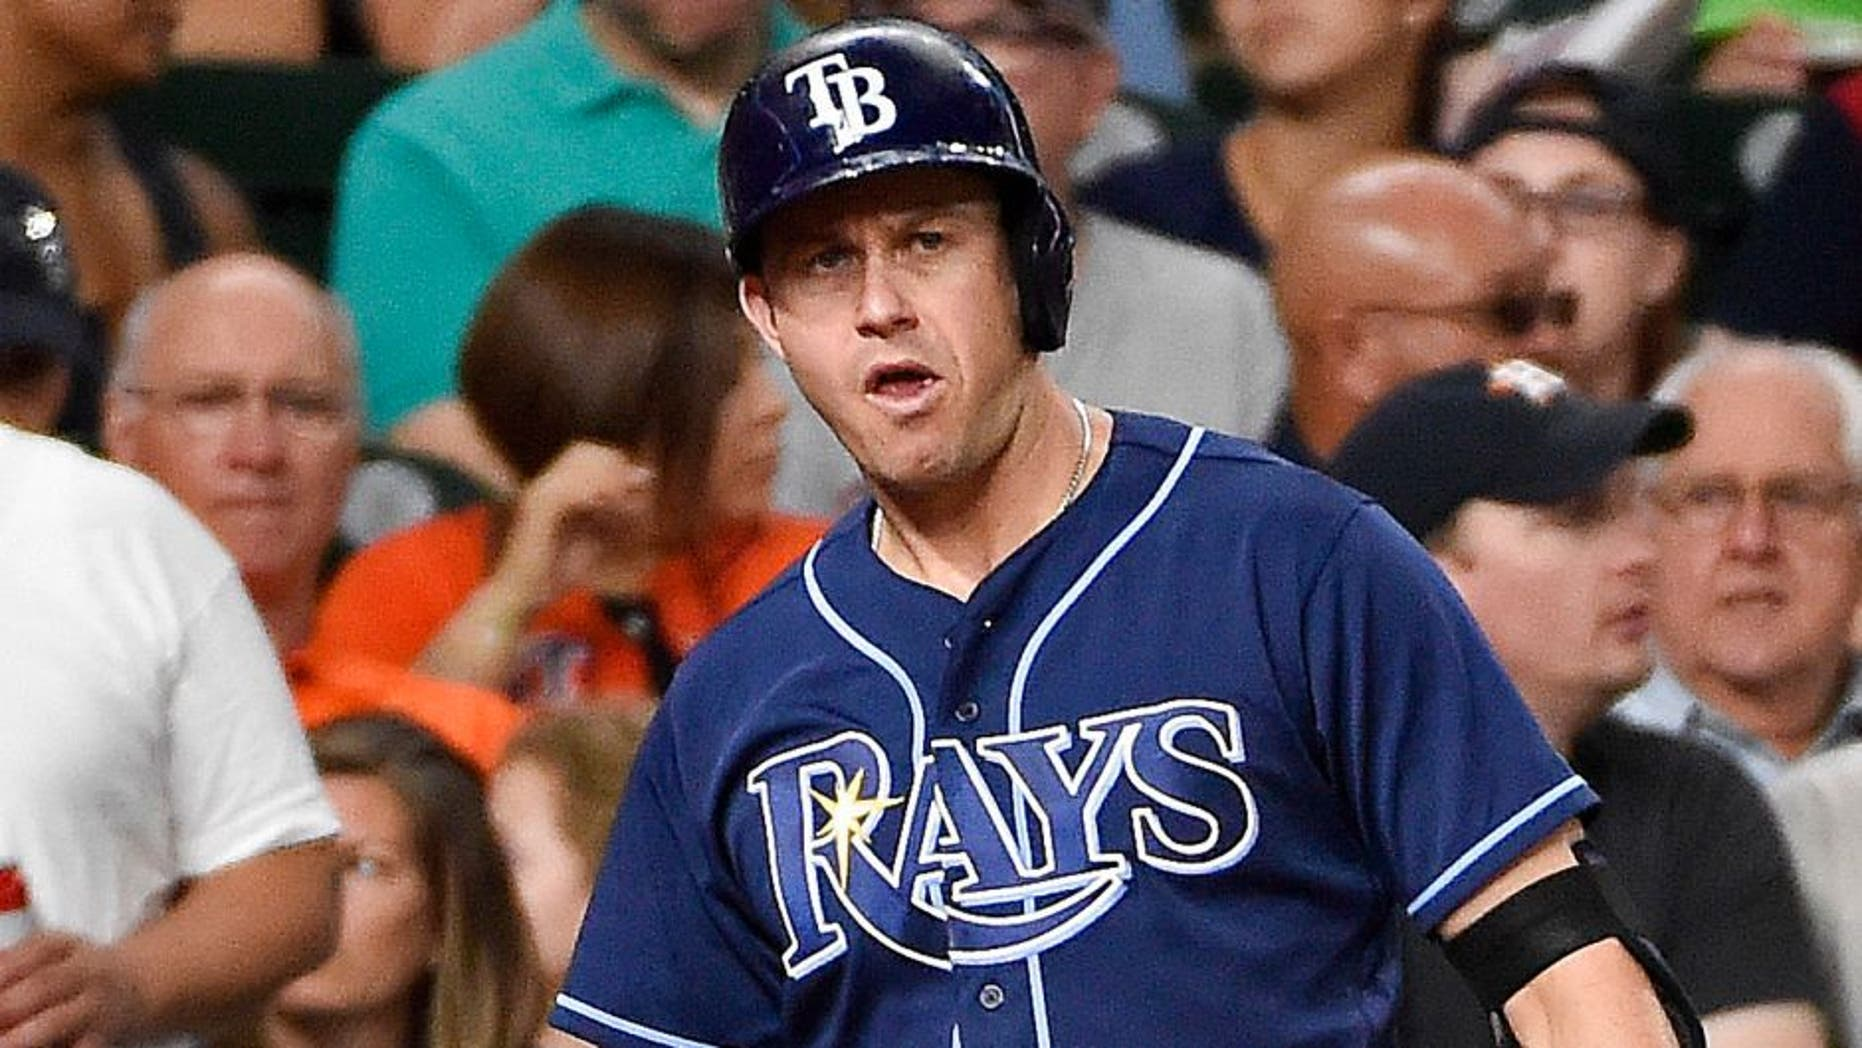 Tampa Bay Rays designated hitter Corey Dickerson (10) shakes hands with Evan Longoria after scoring a run on a wild pitch by Houston Astros' Mike Fiers during the third inning of a baseball game, Friday, Aug. 26, 2016, in Houston. (AP Photo/Eric Christian Smith)